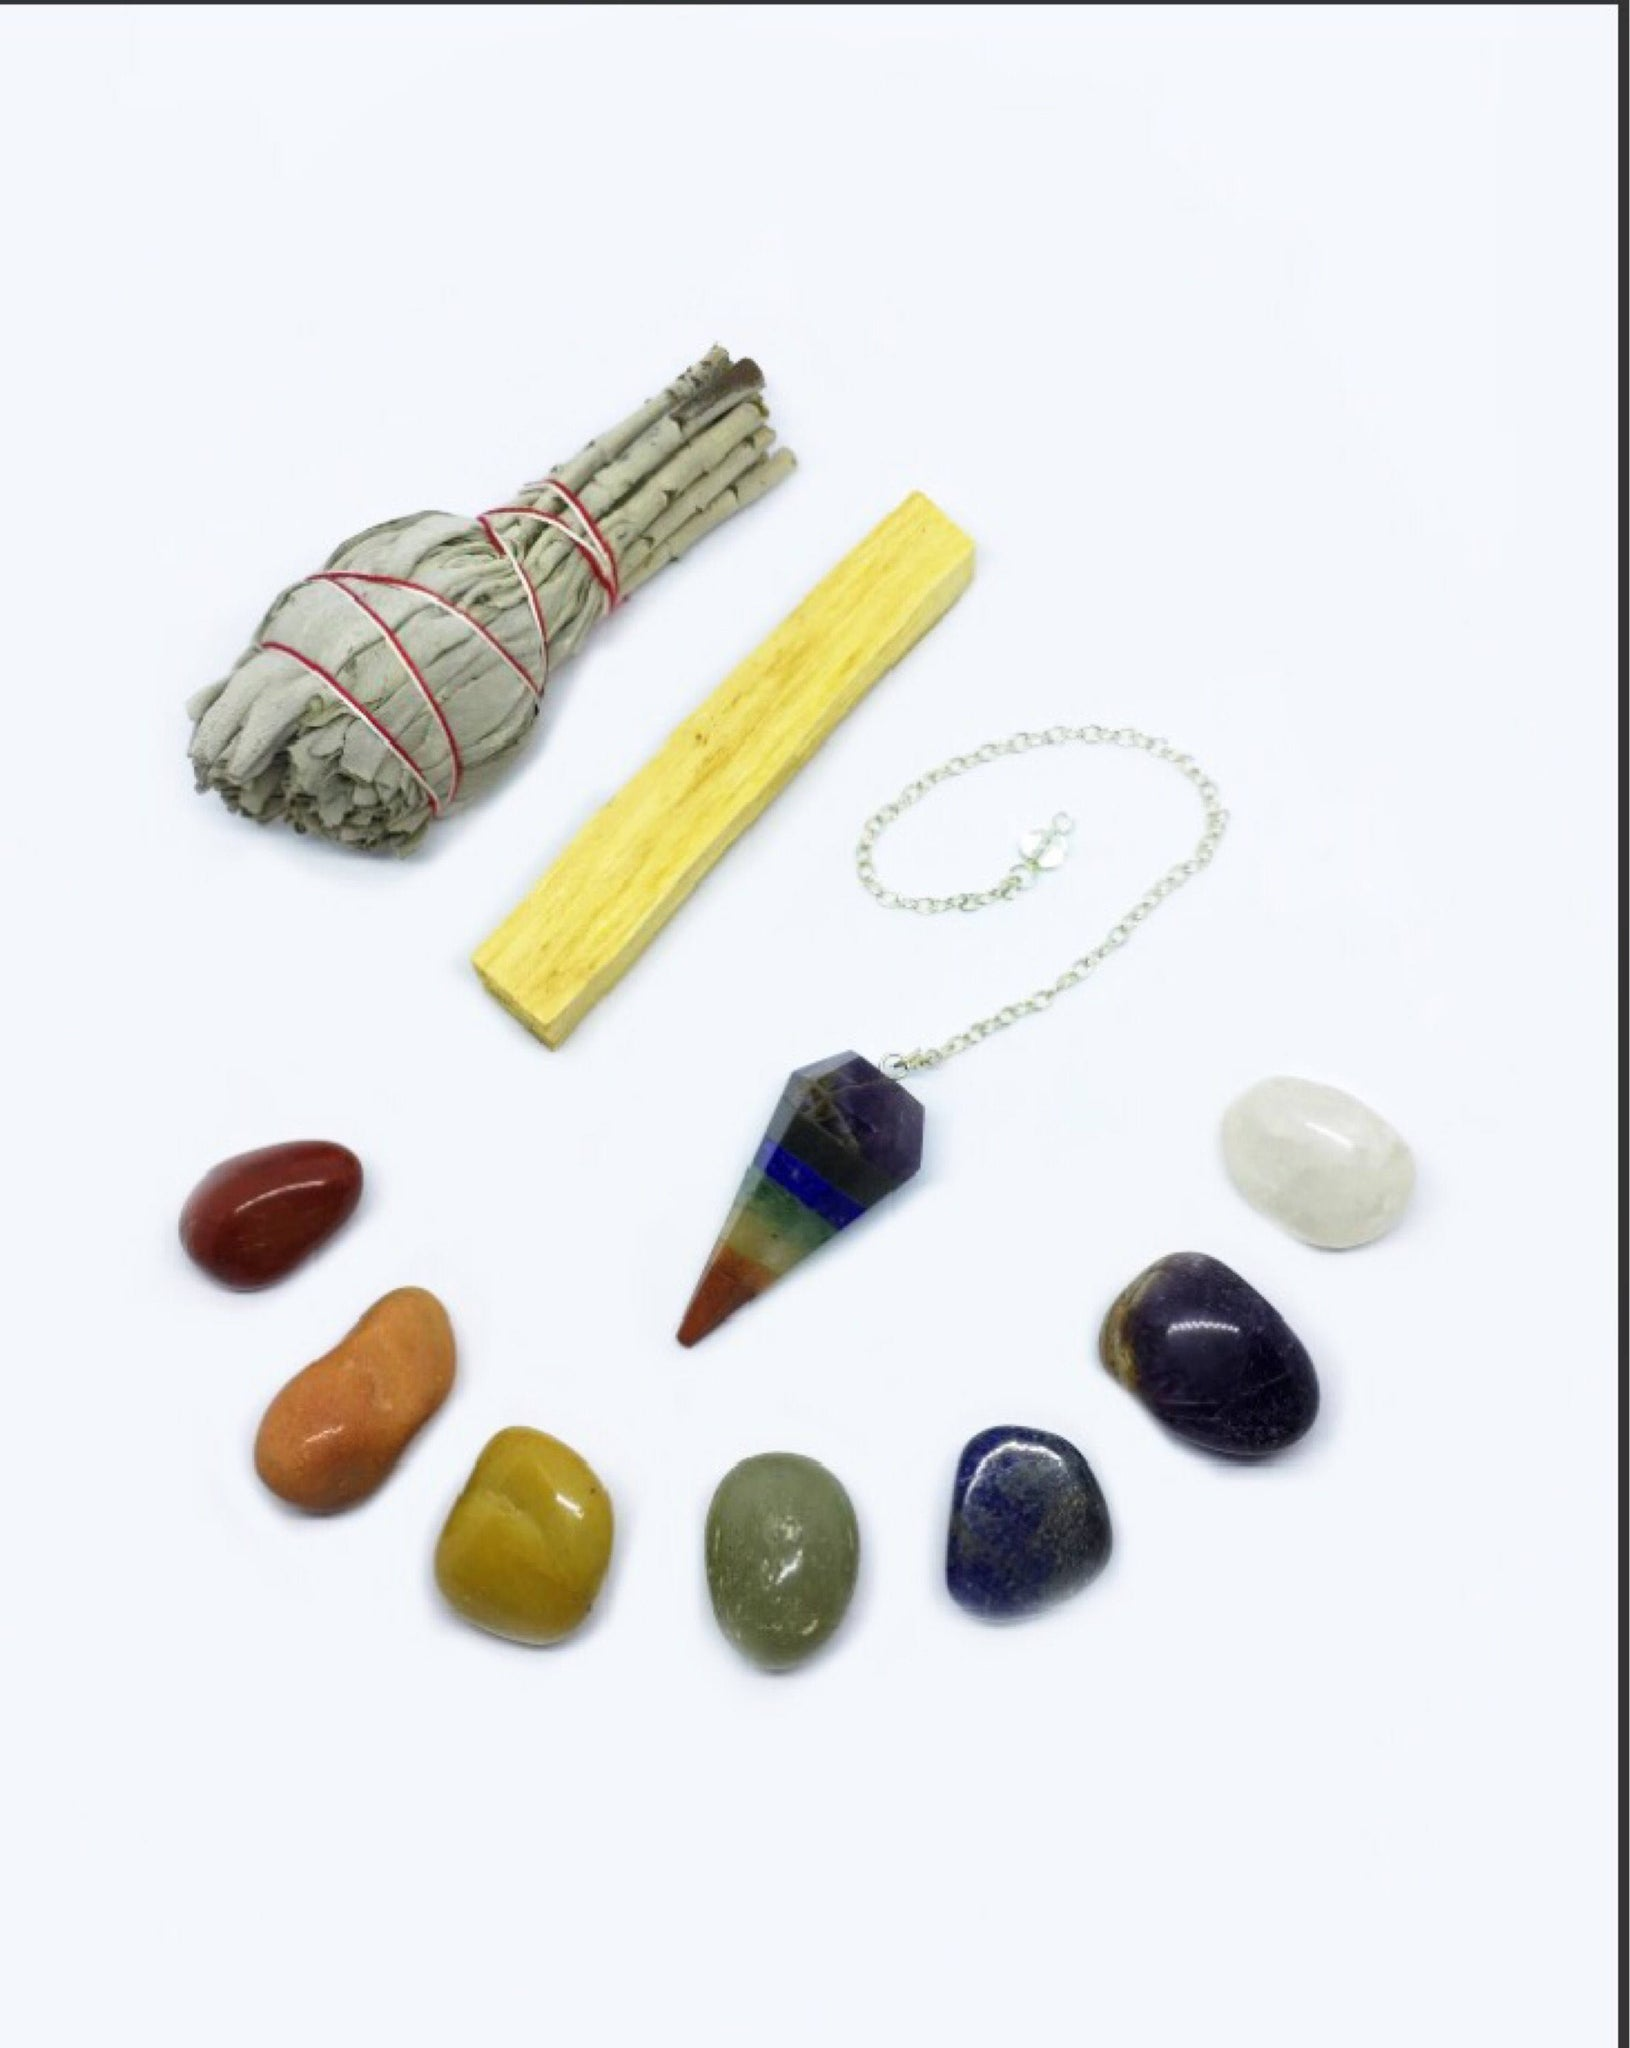 Chakra Crystal Healing Kit: Chakra Pendulum with Chakra Crystals, White California Sage, Palo Santo, + Instructions -Balance Your Chakras